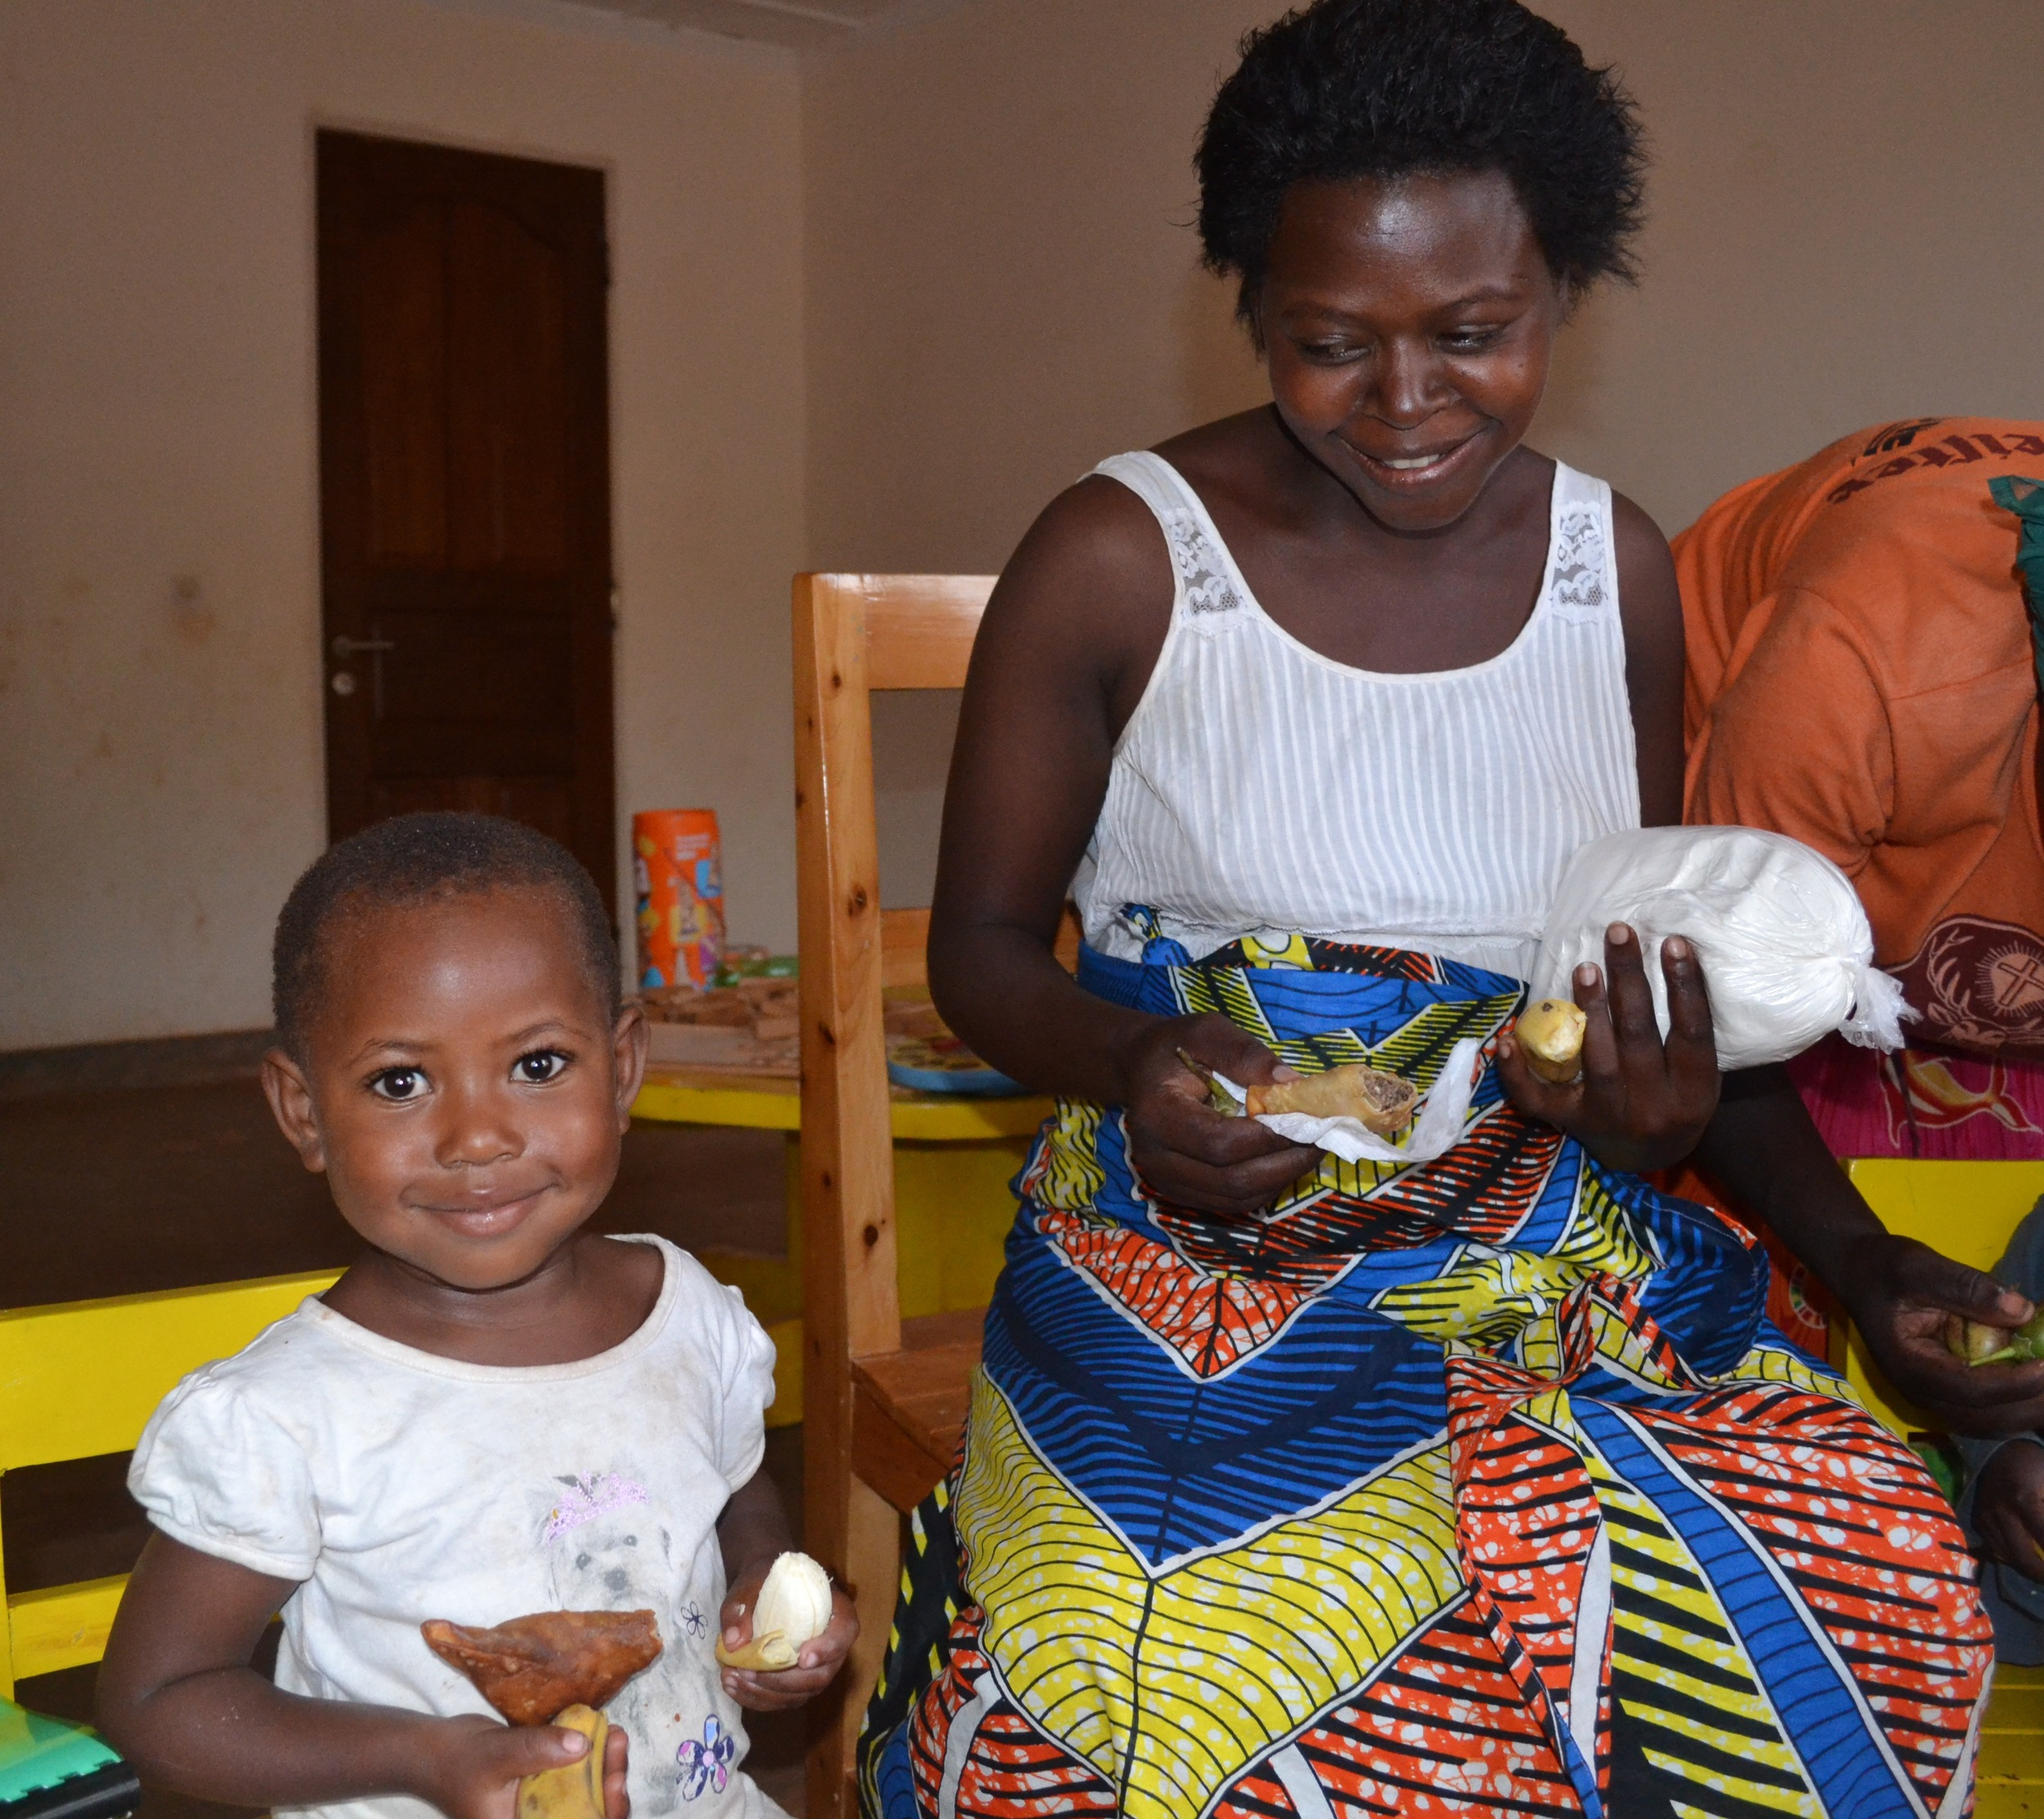 A sneak peek inside a Moms LitClub meeting in Rwanda.